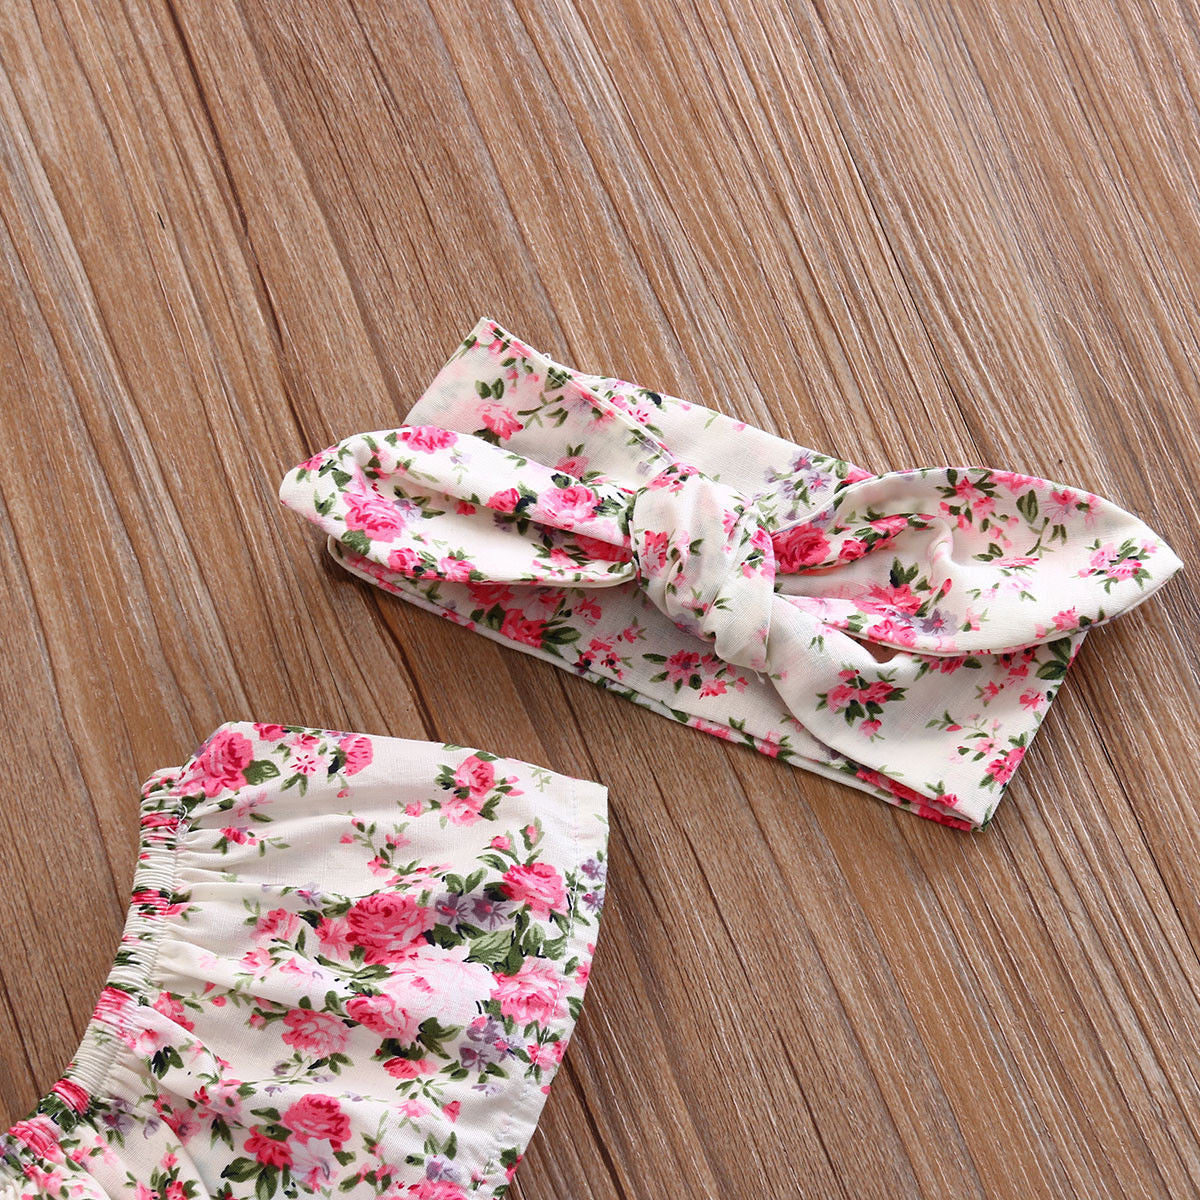 Baby Girls Floral Romper with Headband Set